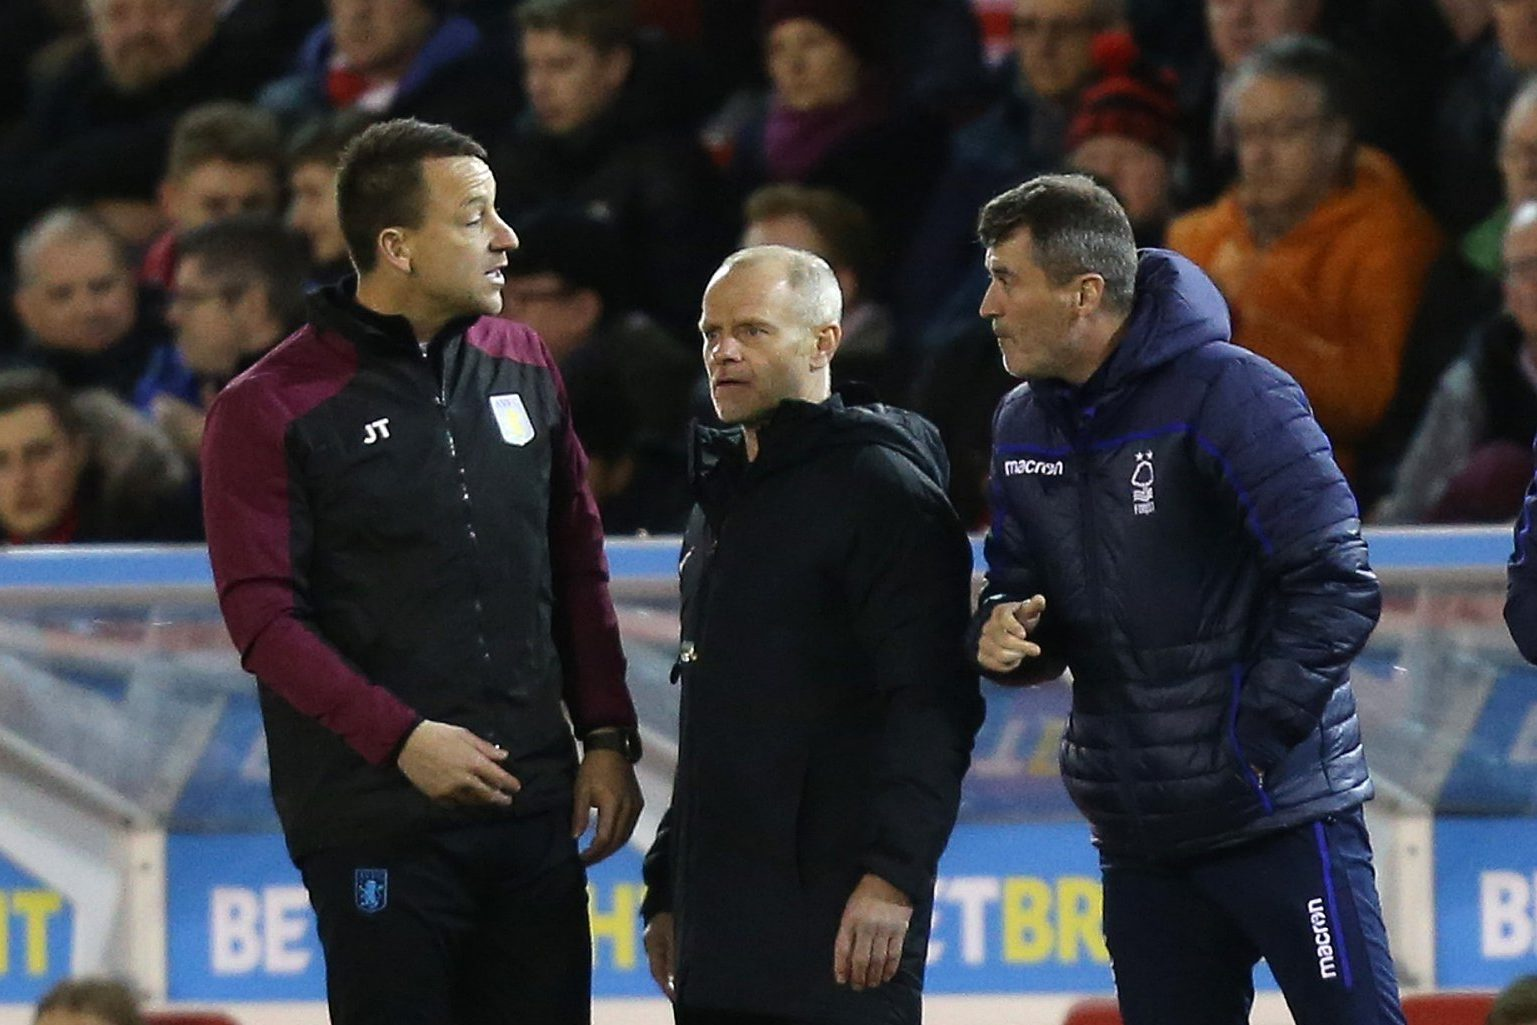 John Terry and Roy Keane in touchline bust-up during Aston Villa's win over Nottingham Forest